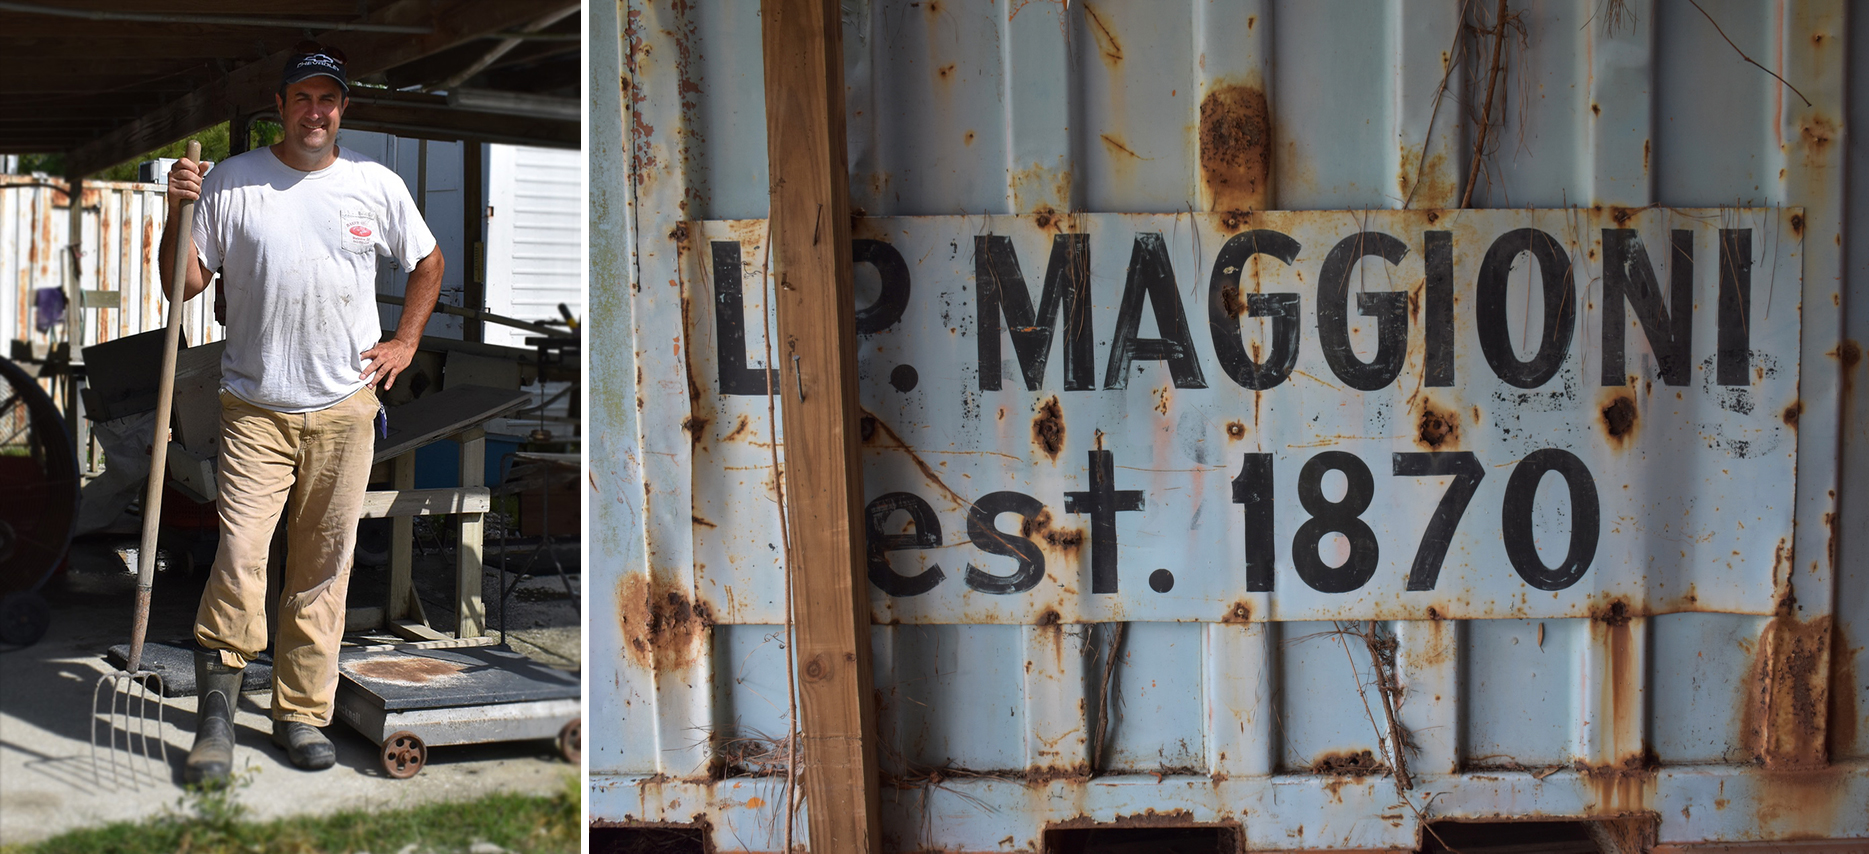 Left: Jeff Beasley at Maggioni Oyster company; Right, one of many Maggioni signs from decades past